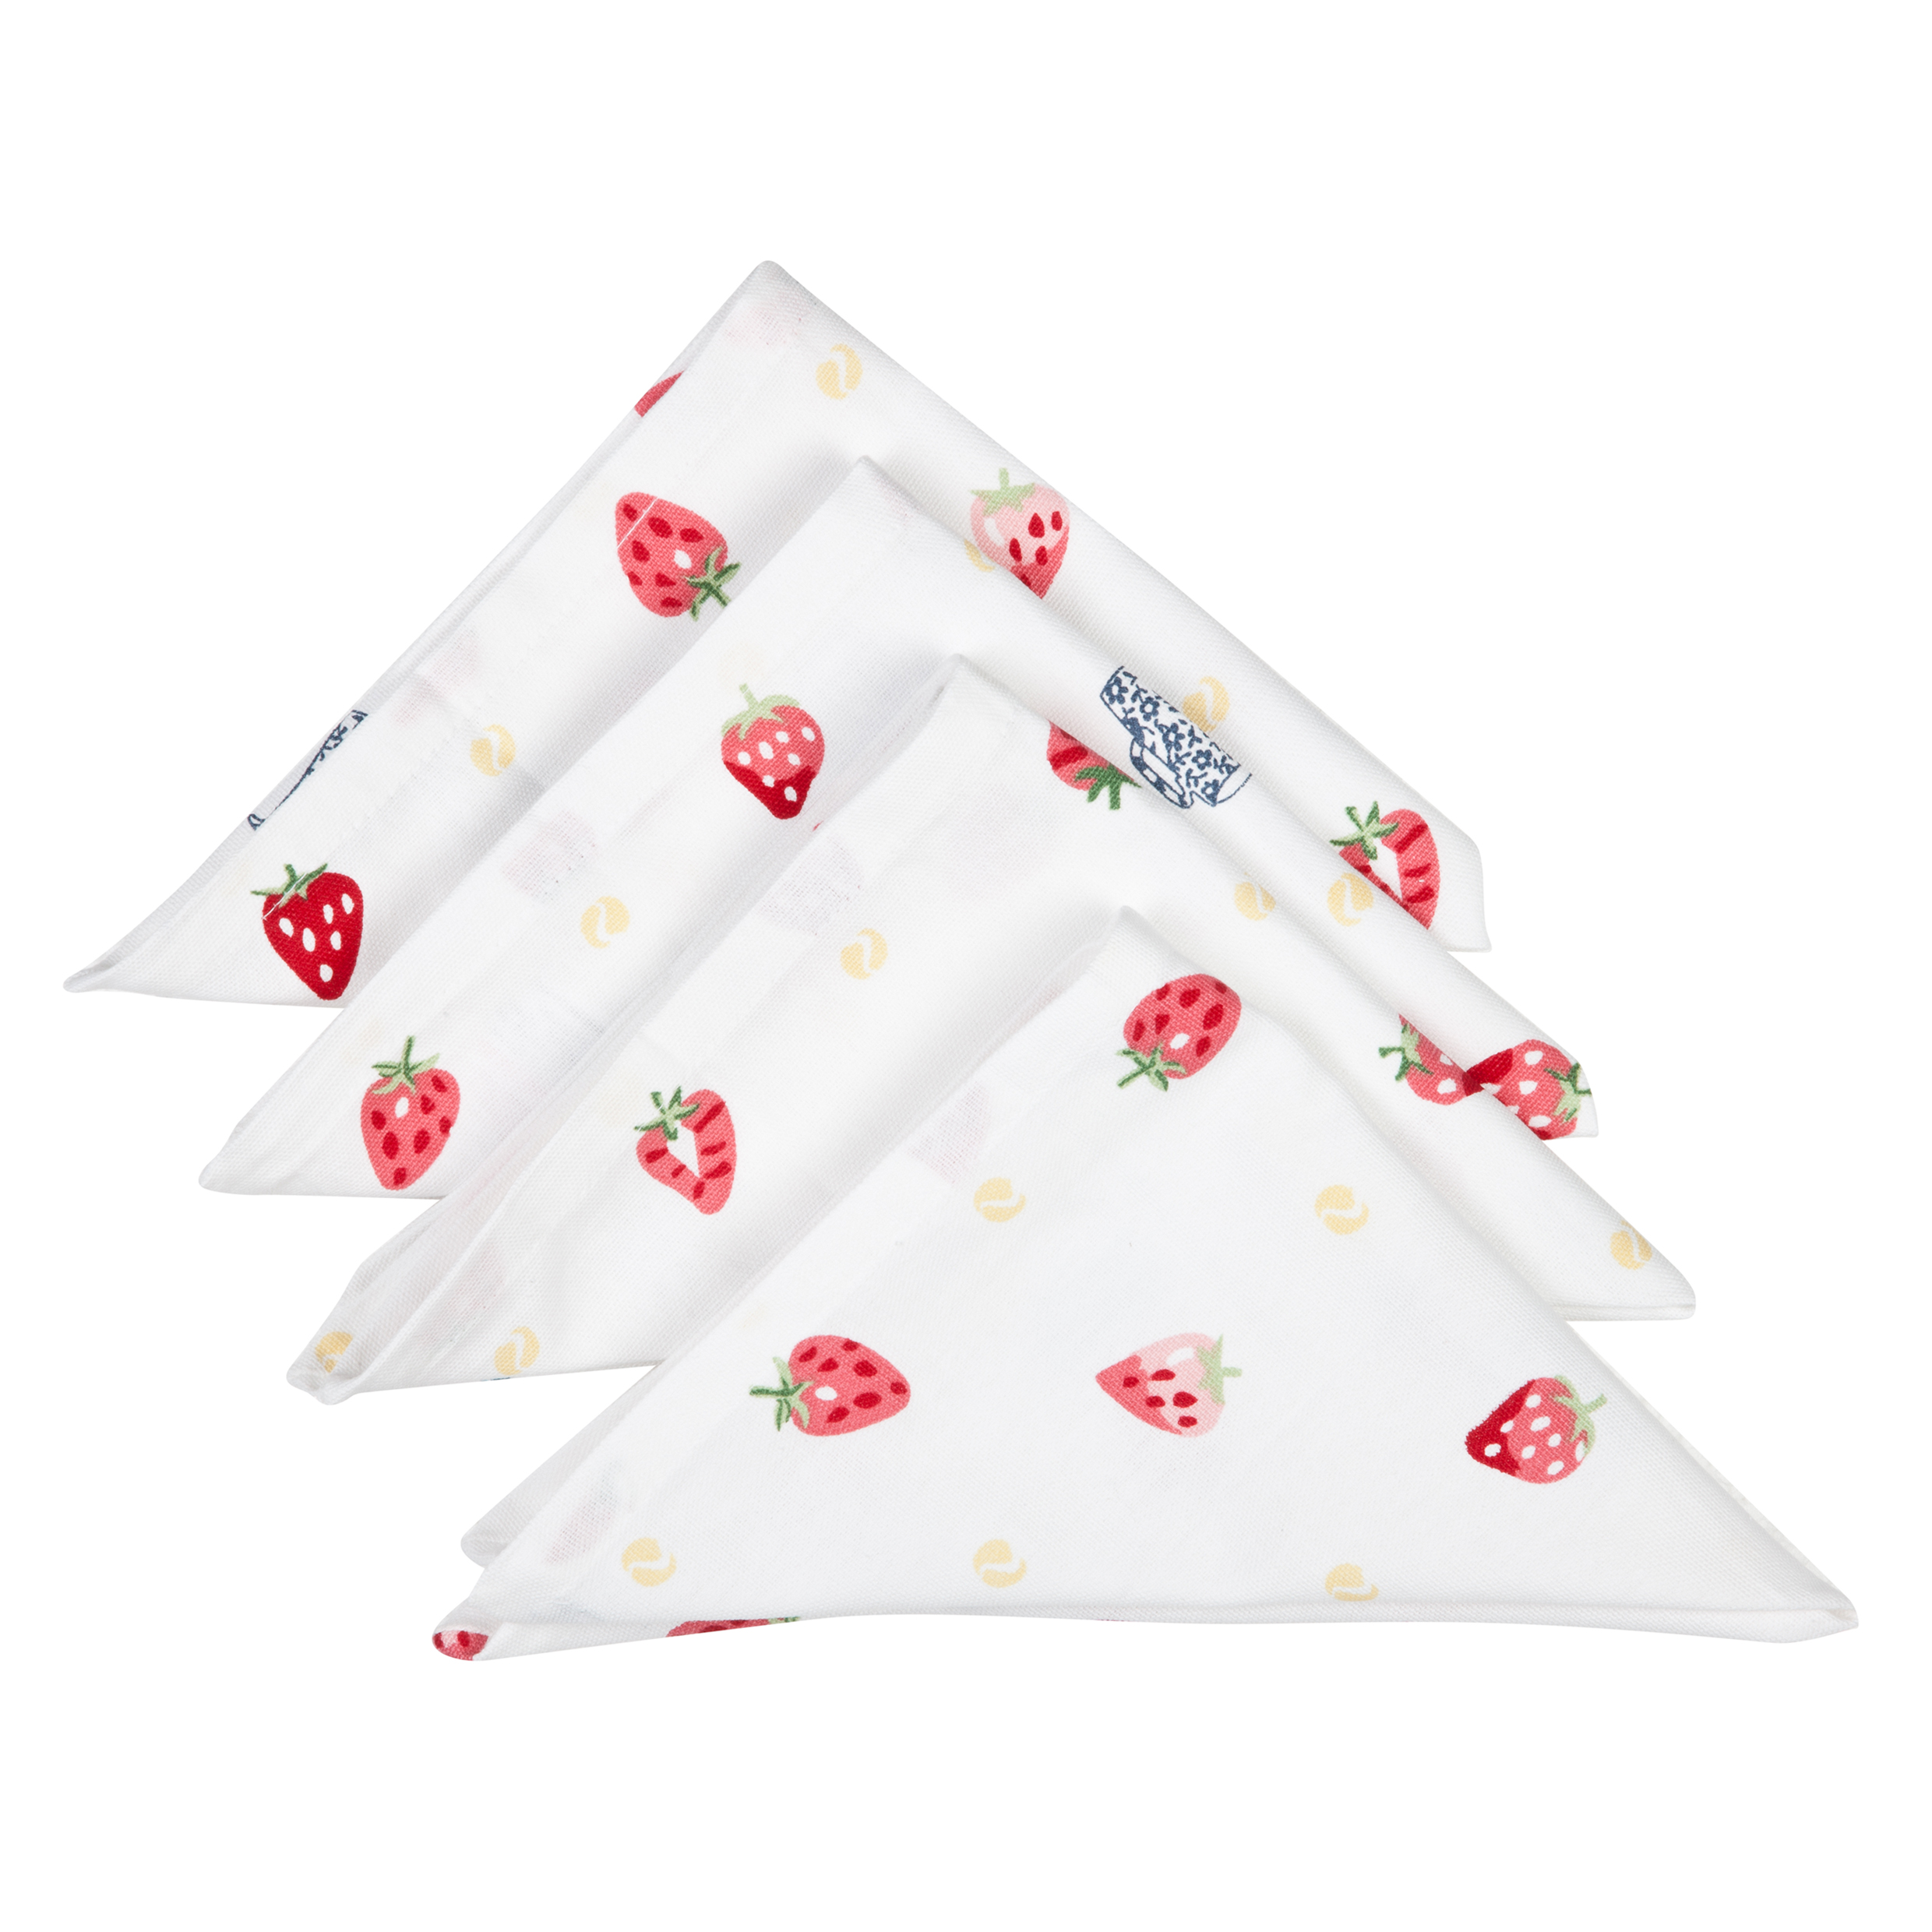 Wimbledon Strawberries and Cream Napkins - Pack of 4 - White